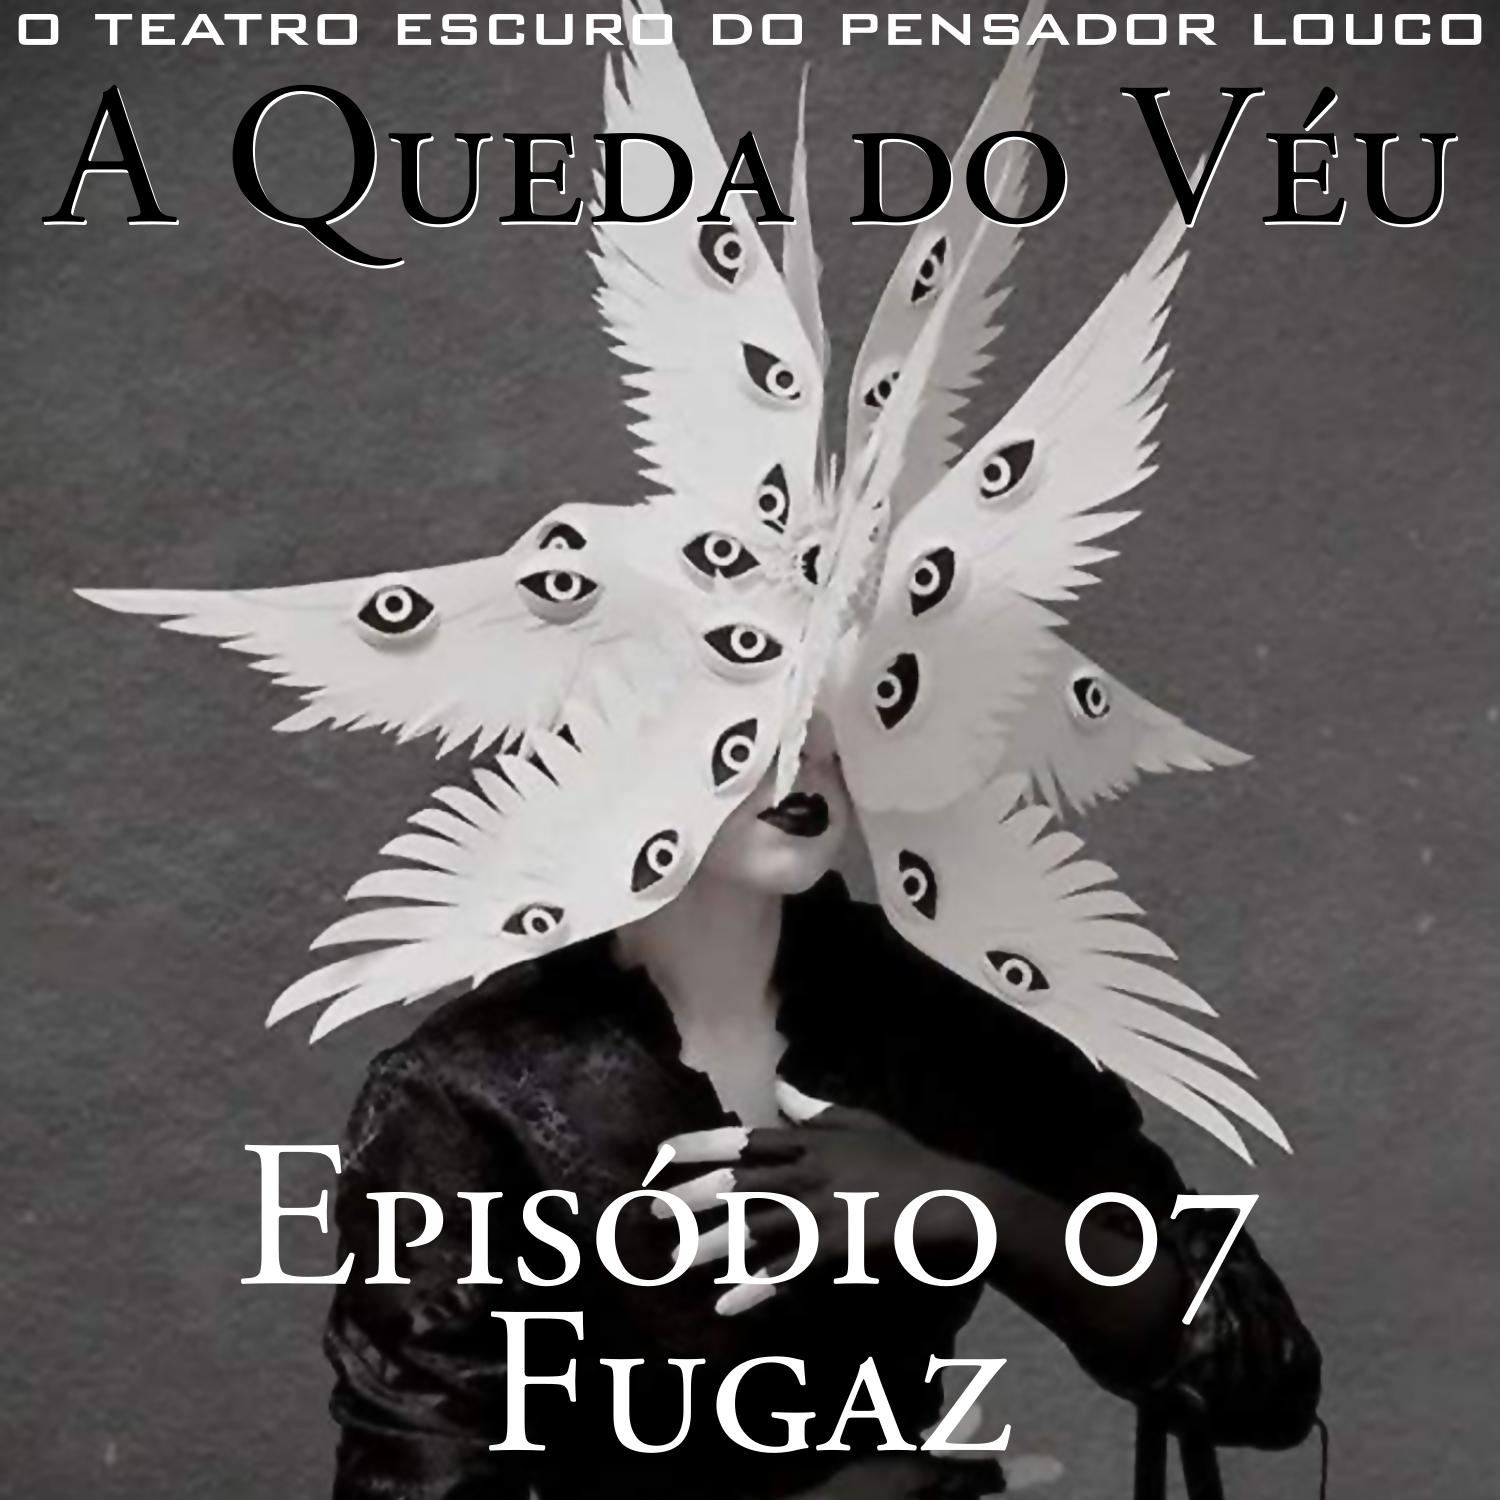 A Queda do Véu 07 - Fugaz